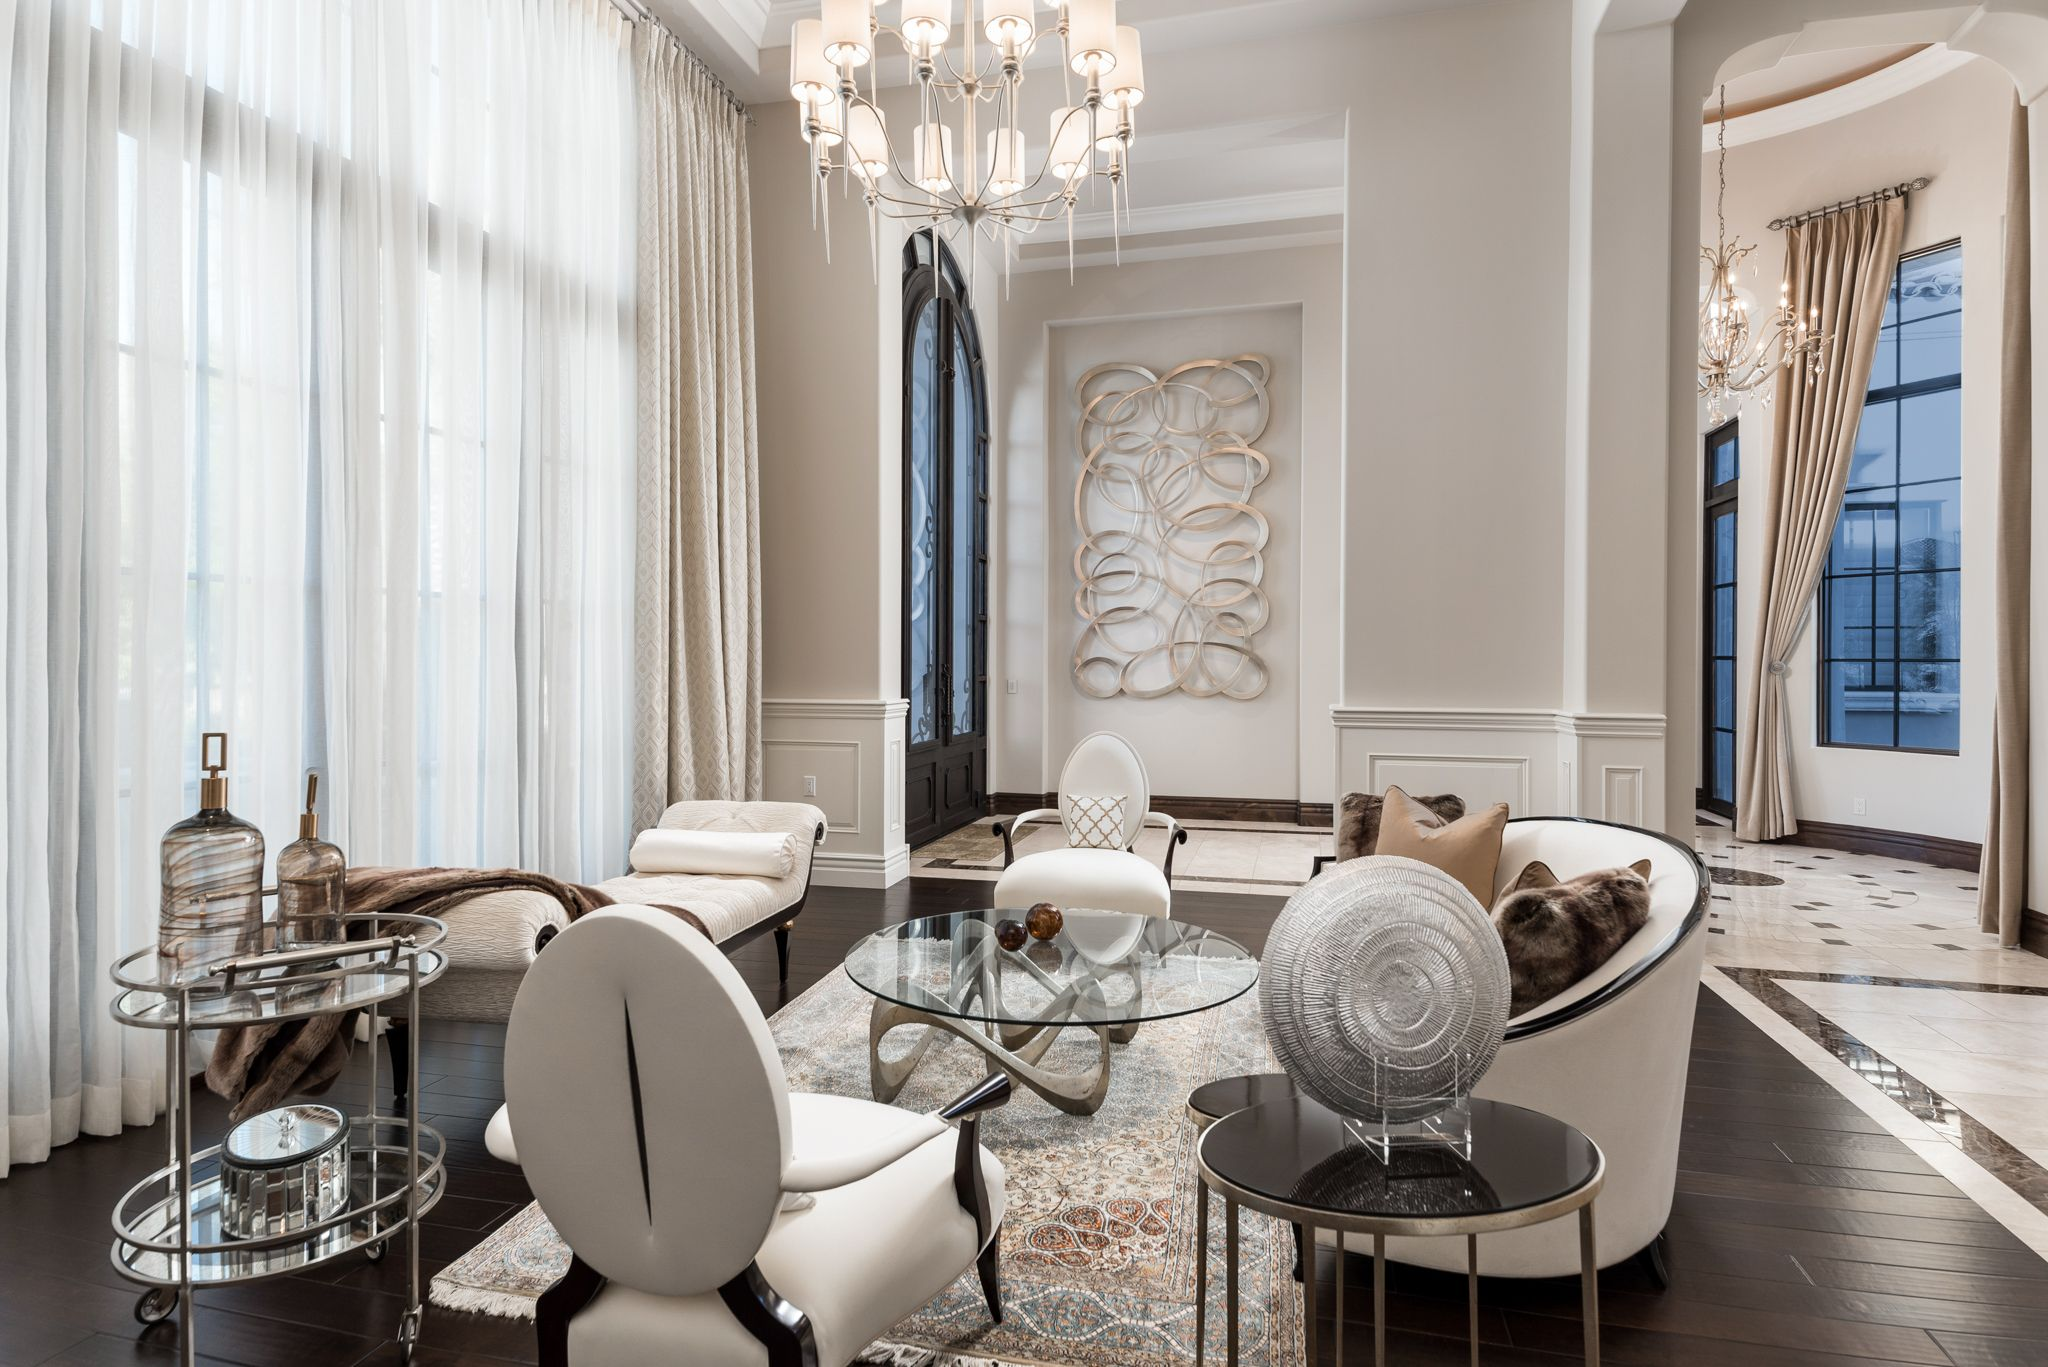 High End Interior Design Furniture ~ Looking for a luxury interior designer let us help you with all